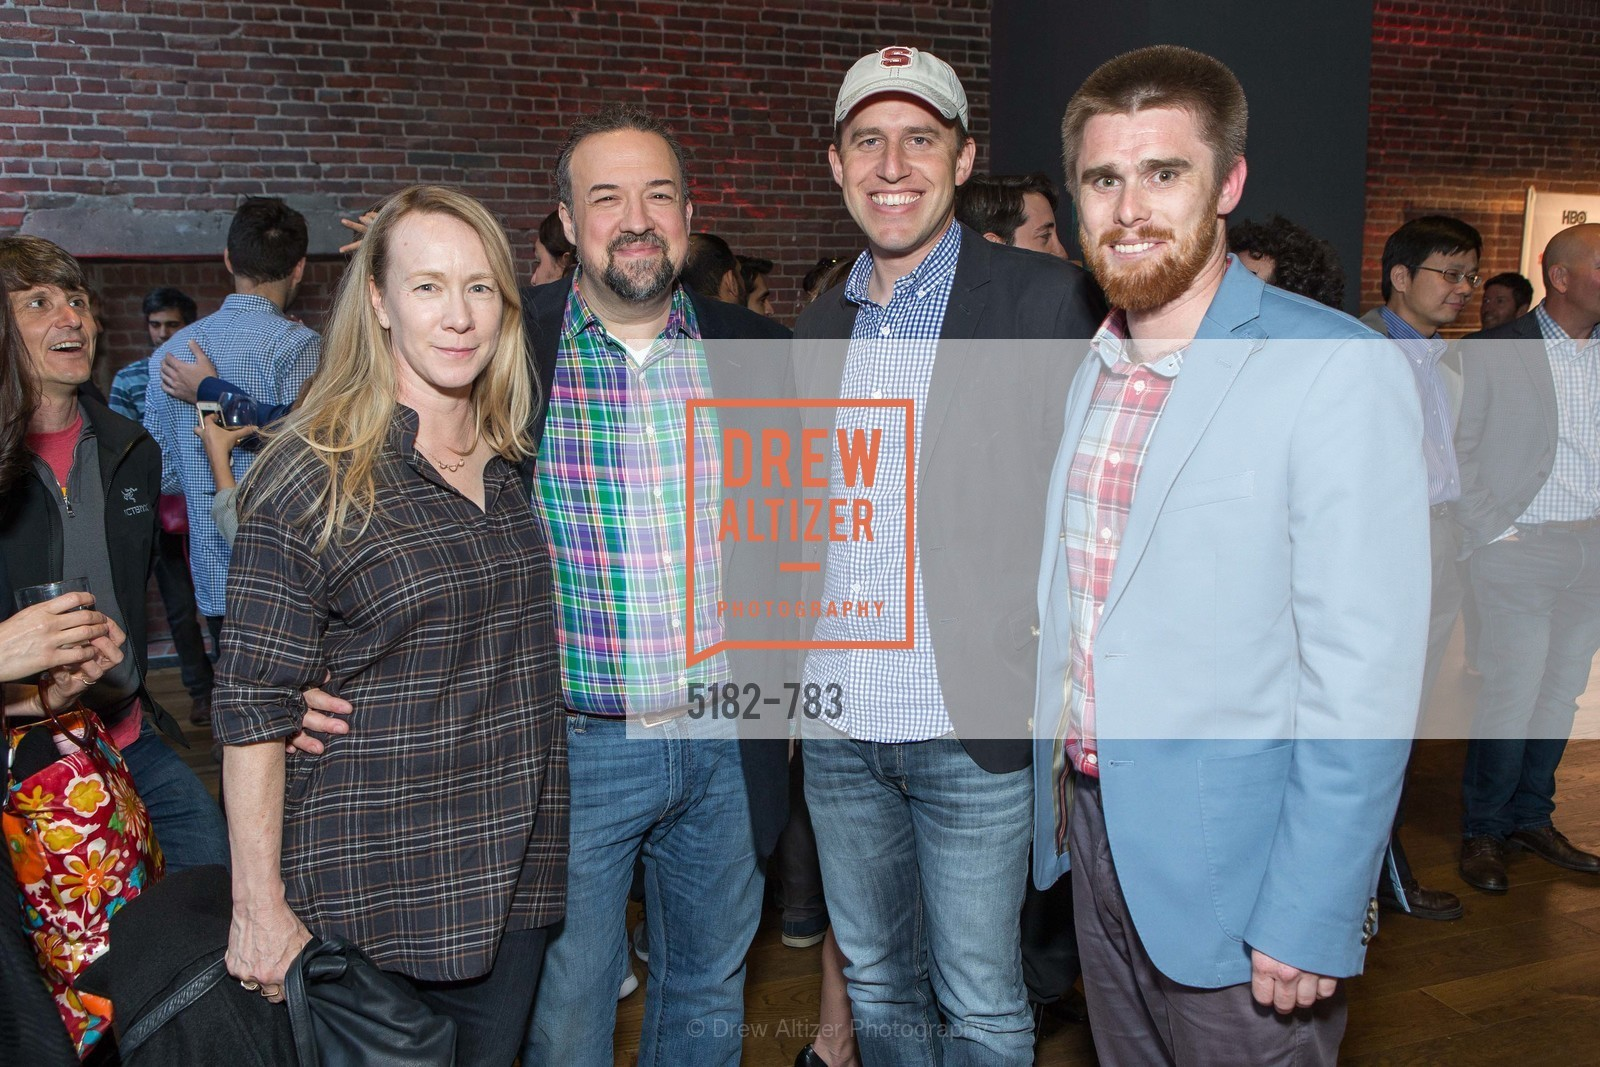 Christine Dibona, Chris Dibona, Brett Taylor, Ross Miller, HBO'S SILICON VALLEY San Francisco Screening, US, April 8th, 2015,Drew Altizer, Drew Altizer Photography, full-service agency, private events, San Francisco photographer, photographer california